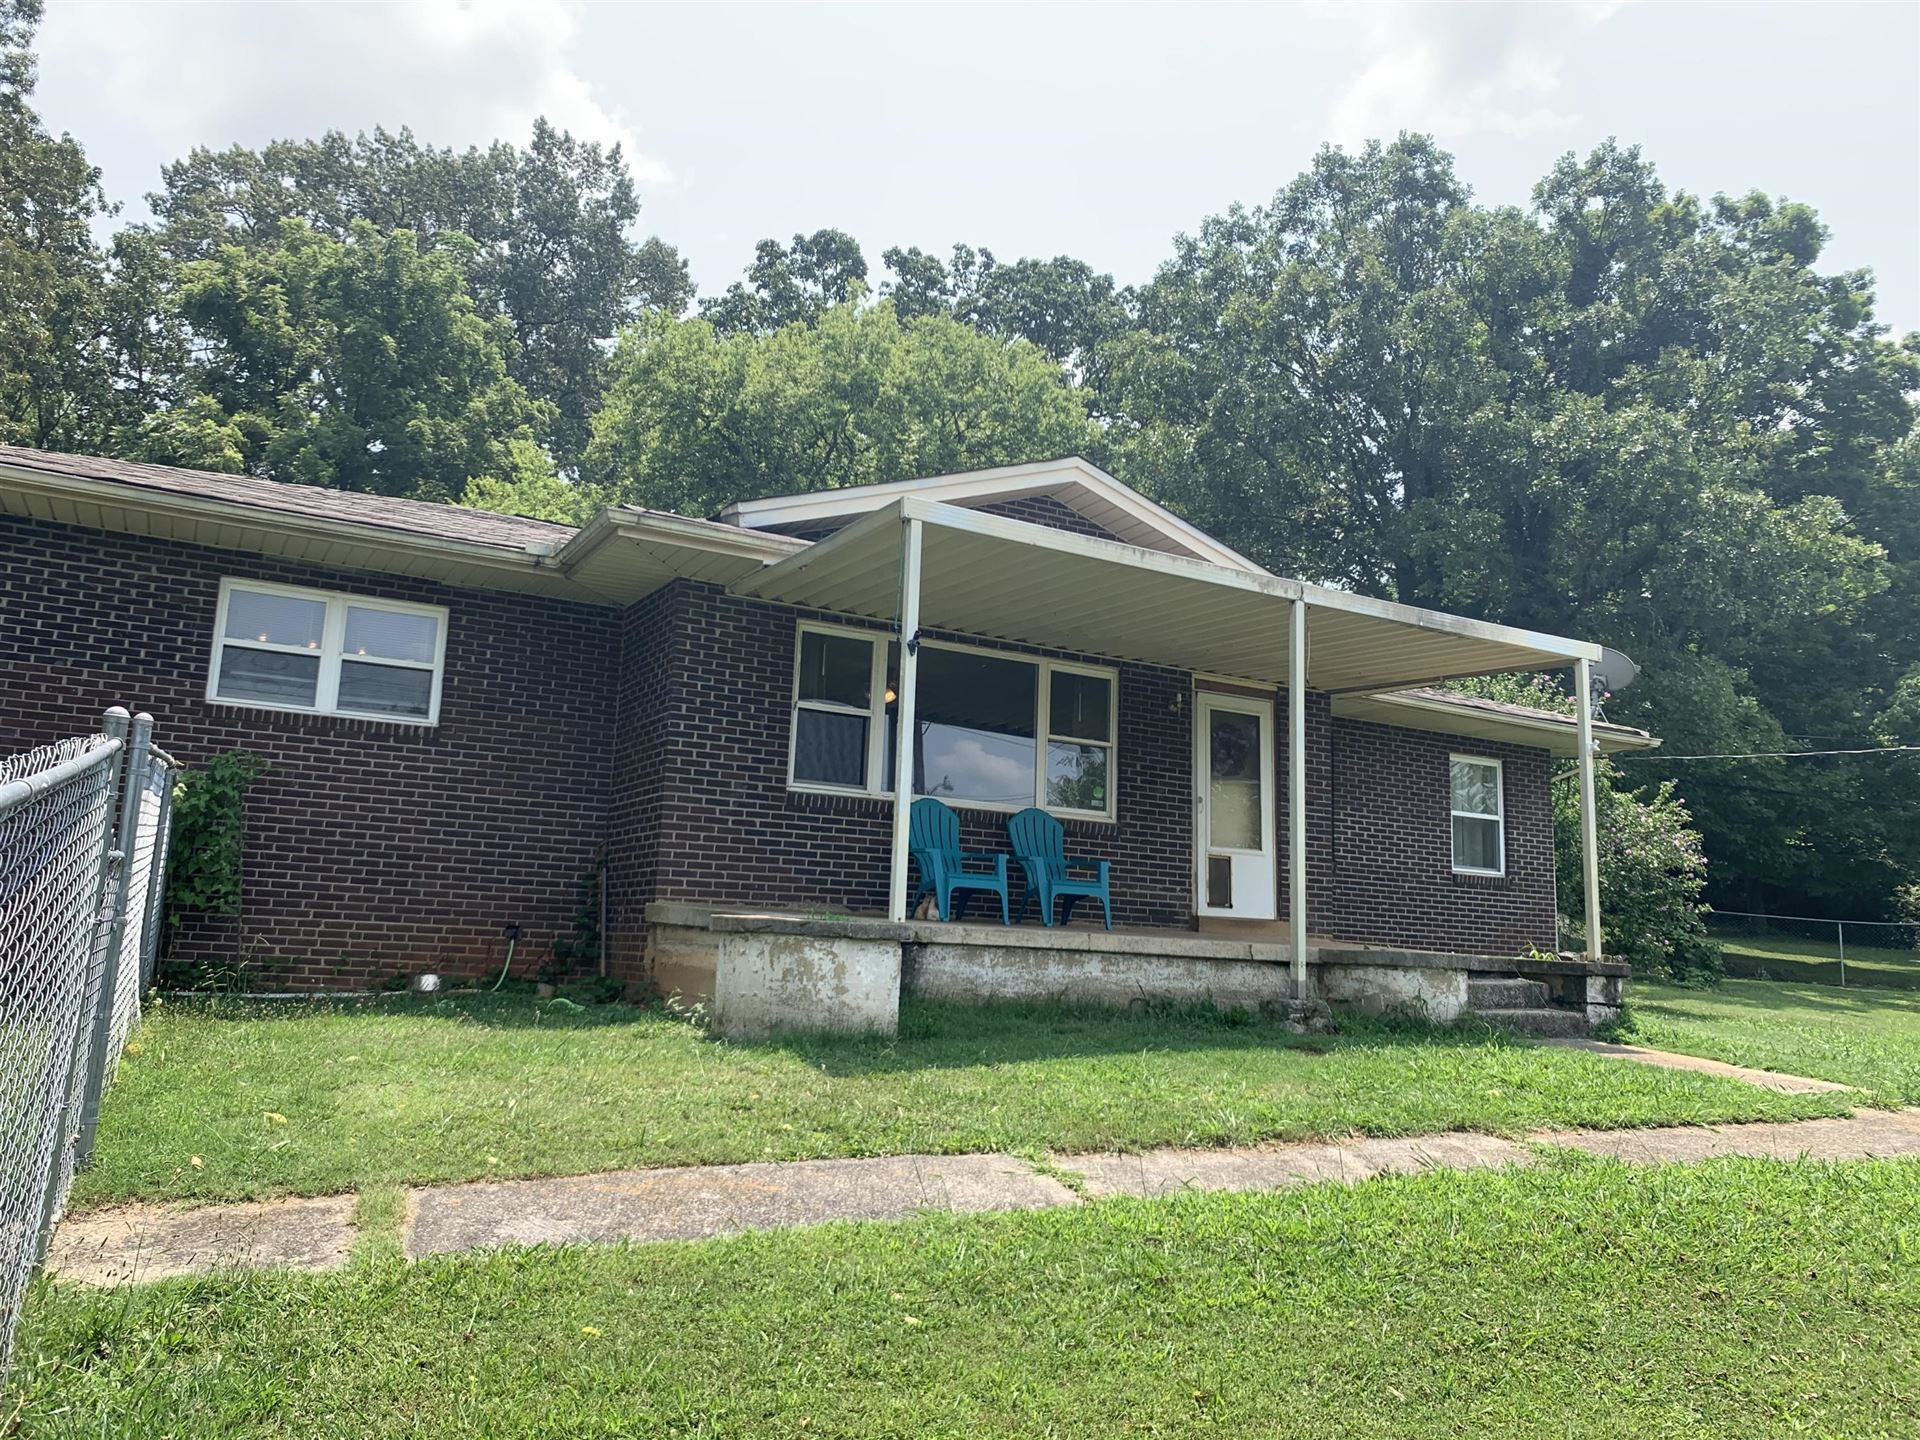 Photo of 204 McCall Rd, Maryville, TN 37804 (MLS # 1161119)